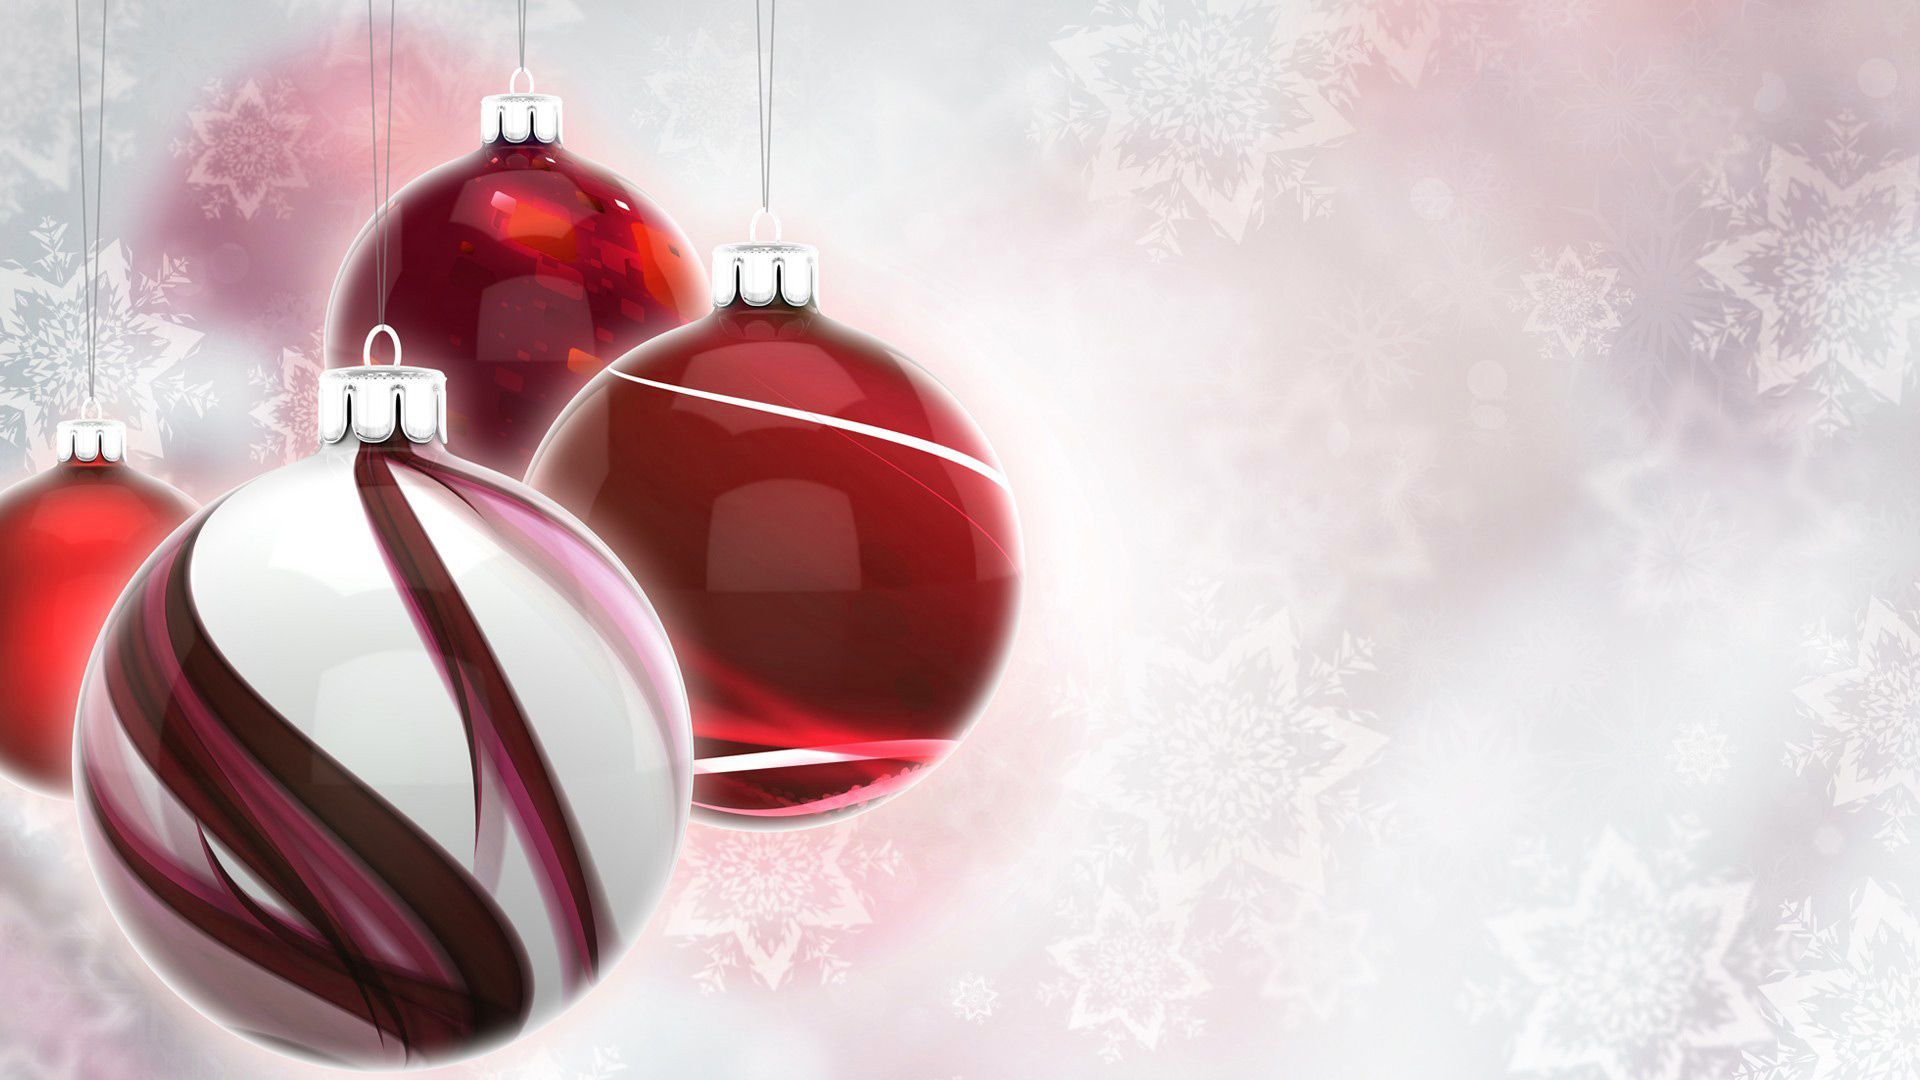 White Christmas Background With Christmas Balls Jpg M 1399676400 White Christmas Background Christmas Balls Christmas Background